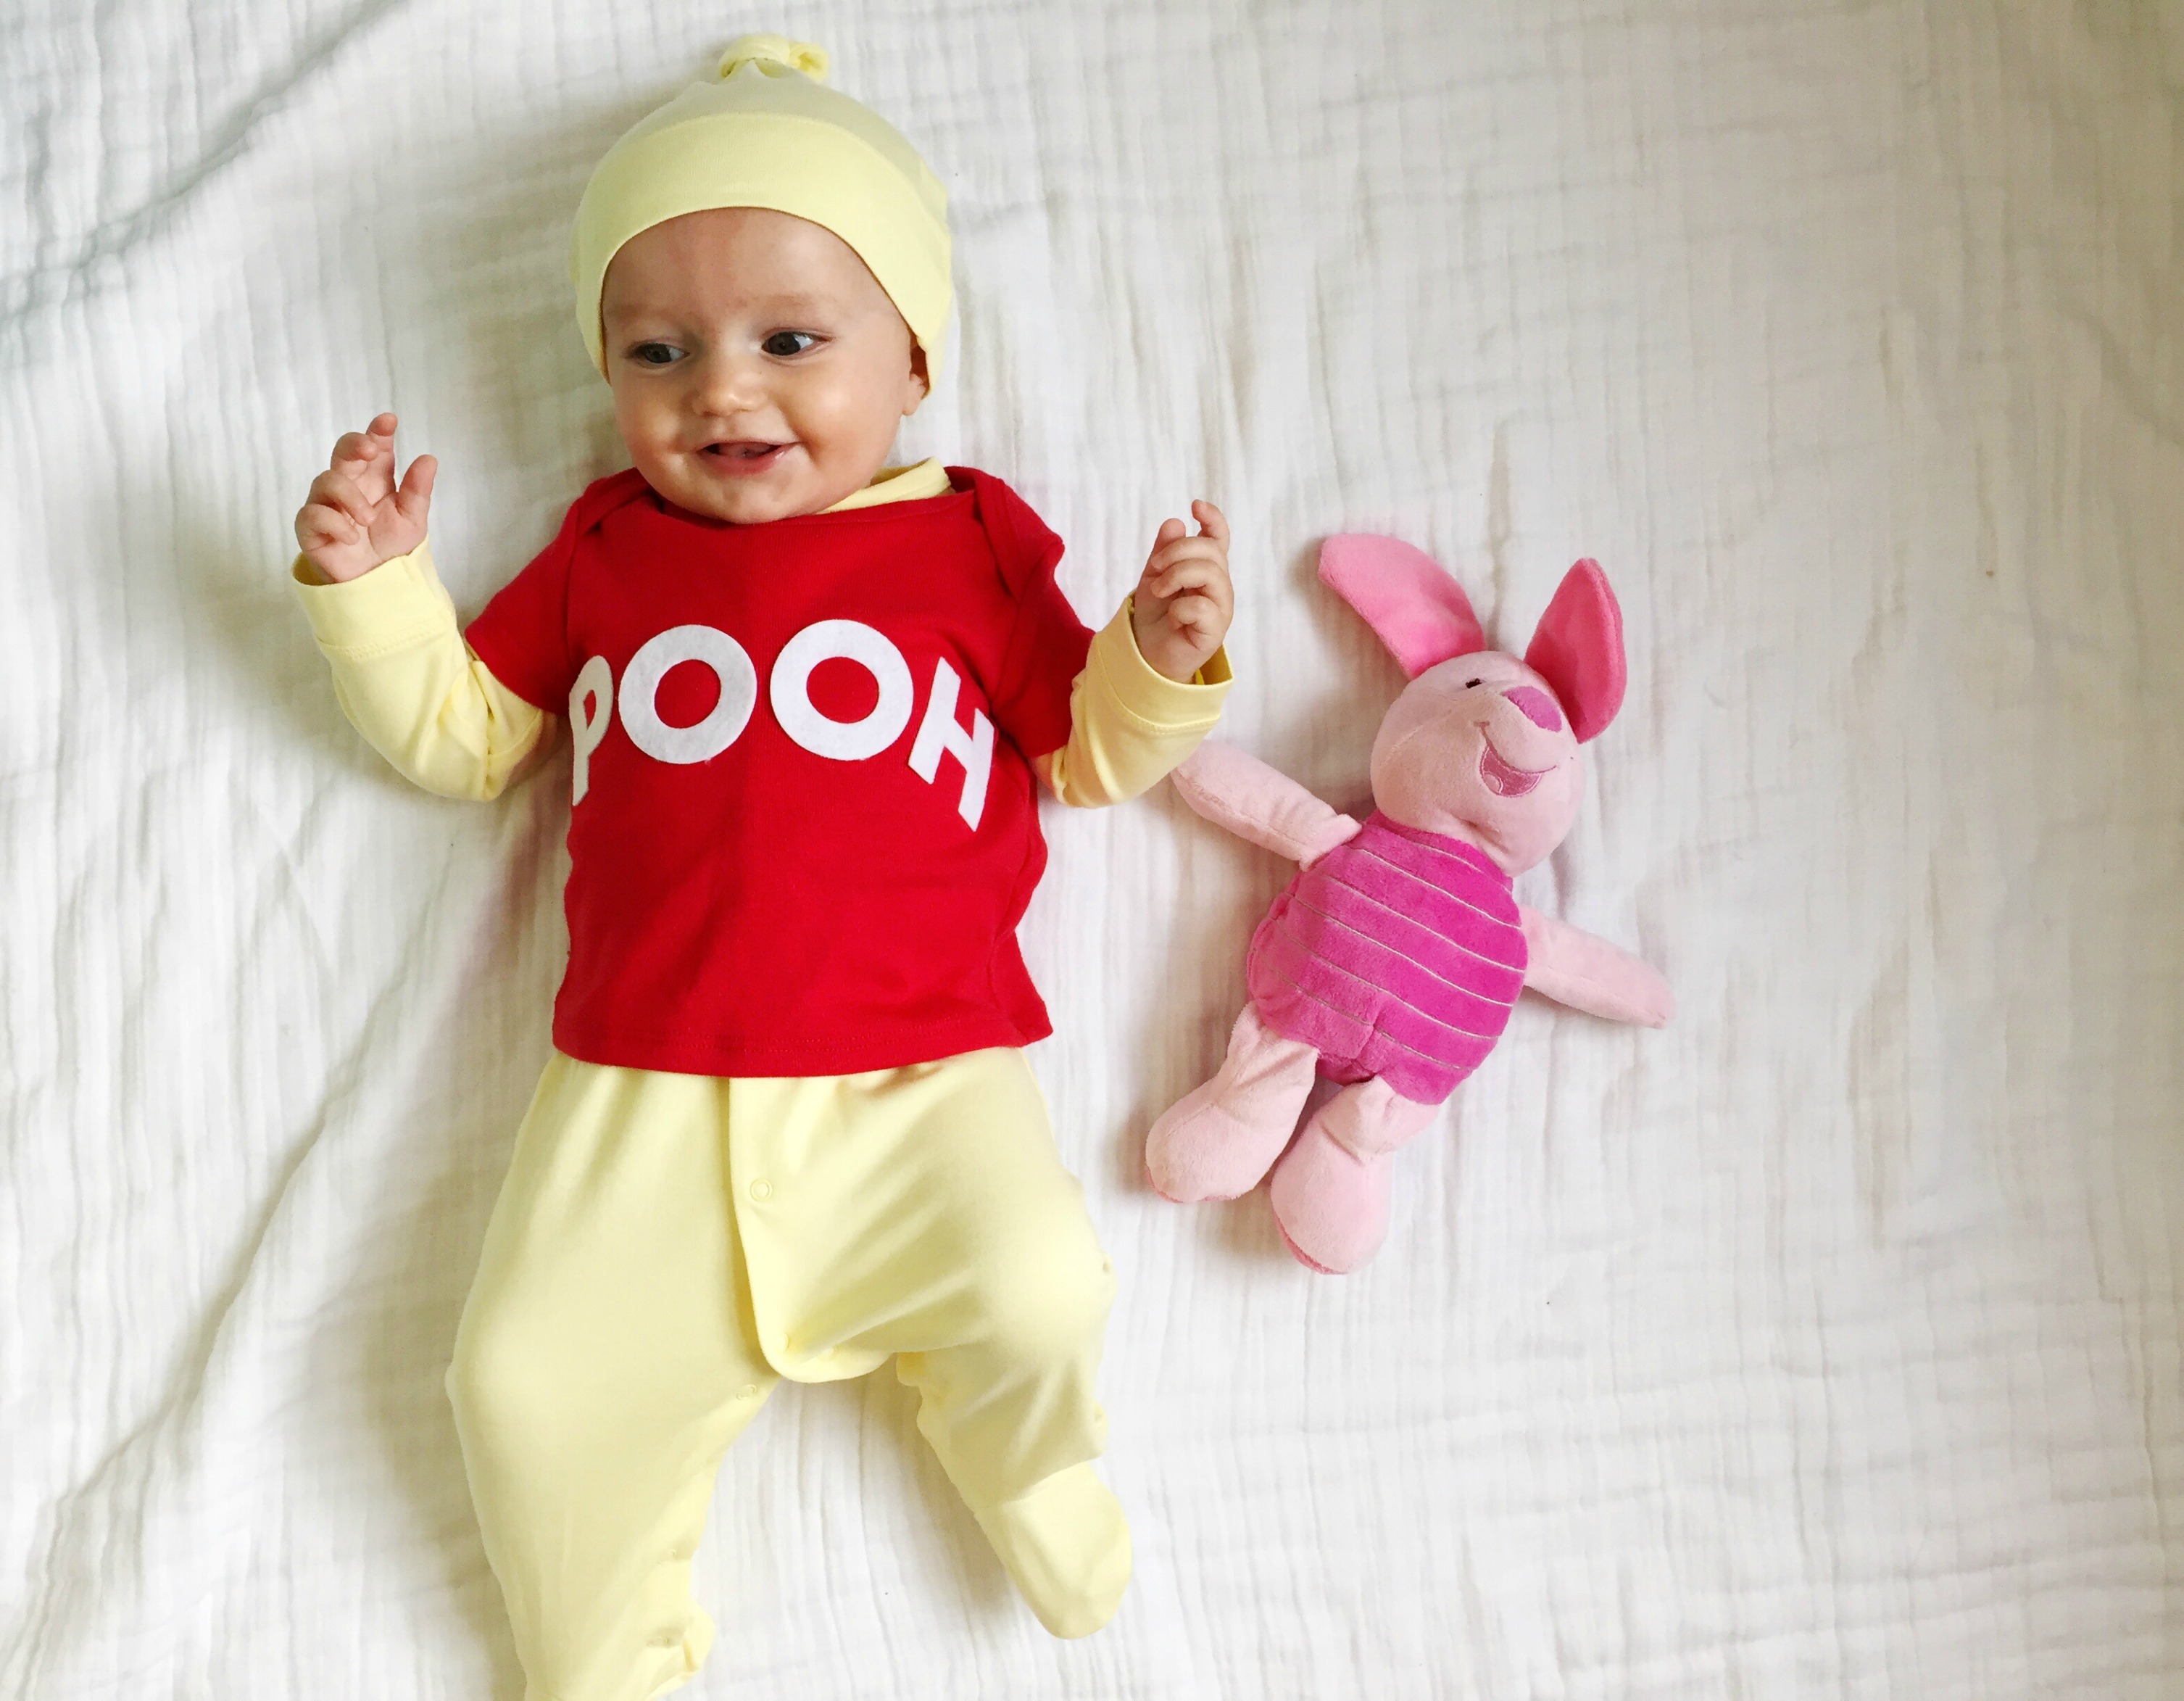 Diy Baby Boy Halloween Costumes.5 Easy Diy Halloween Costumes For Baby The Chirping Moms